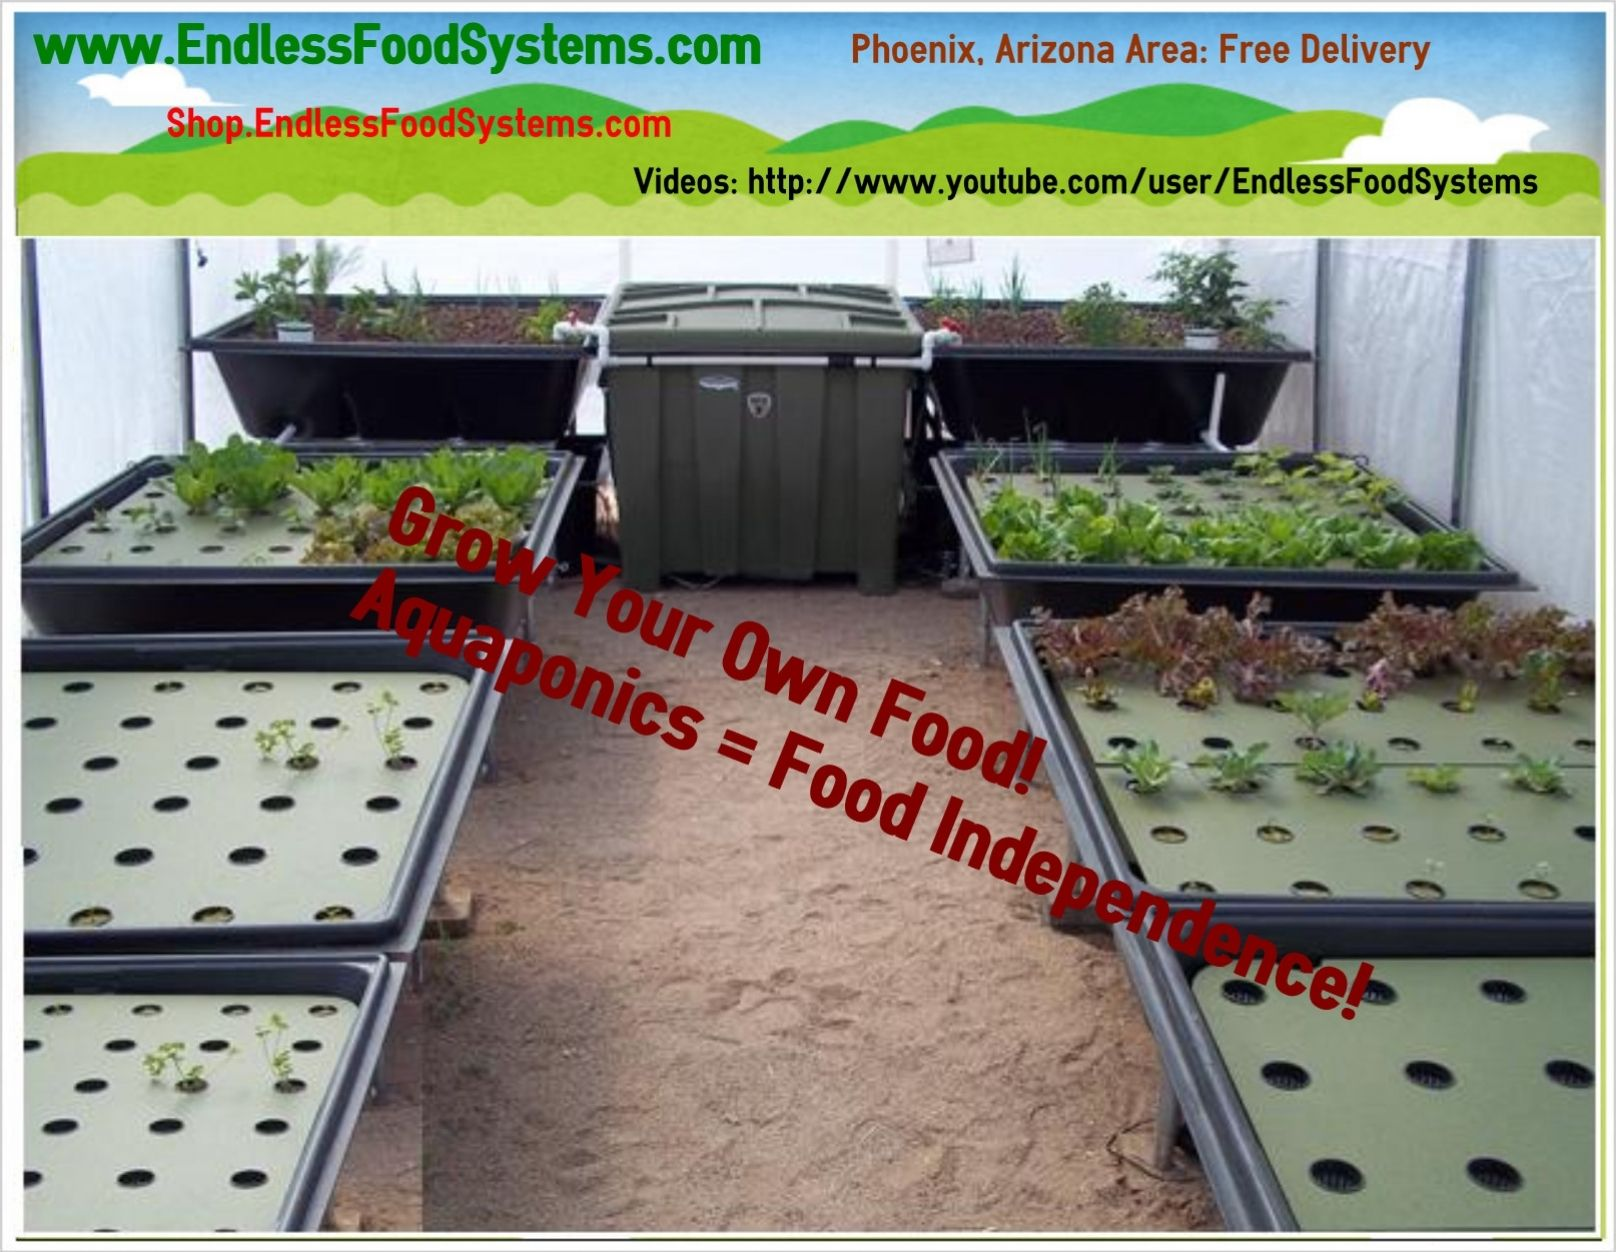 128 sq ft of grow space aquaponics system in phoenix az this